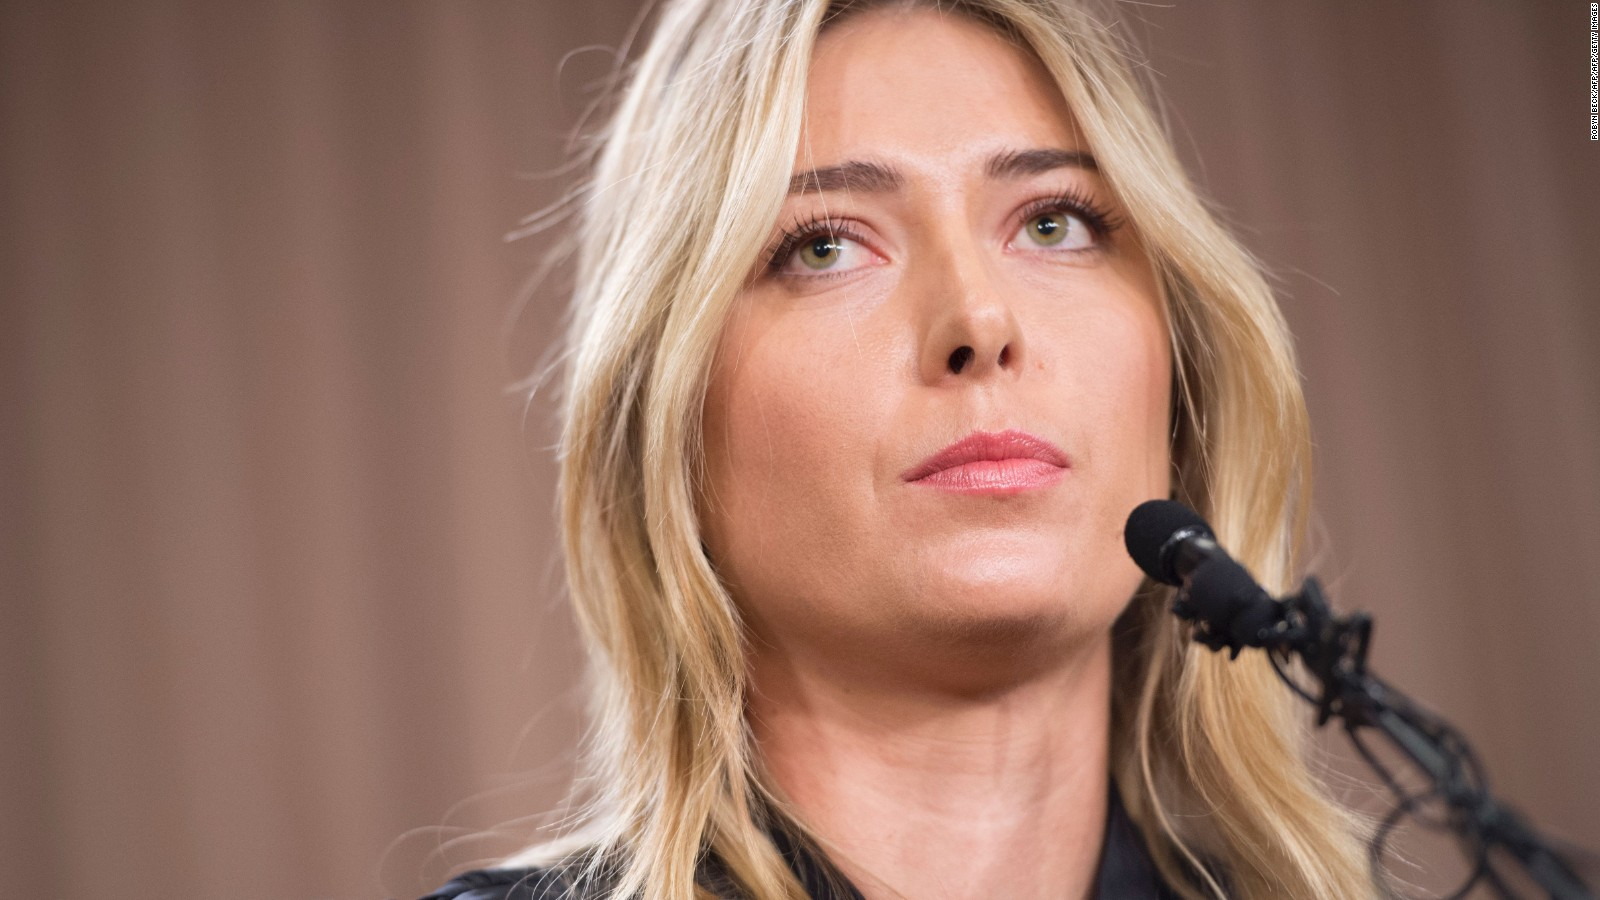 Maria Sharapova Serena Williams has owned me CNN